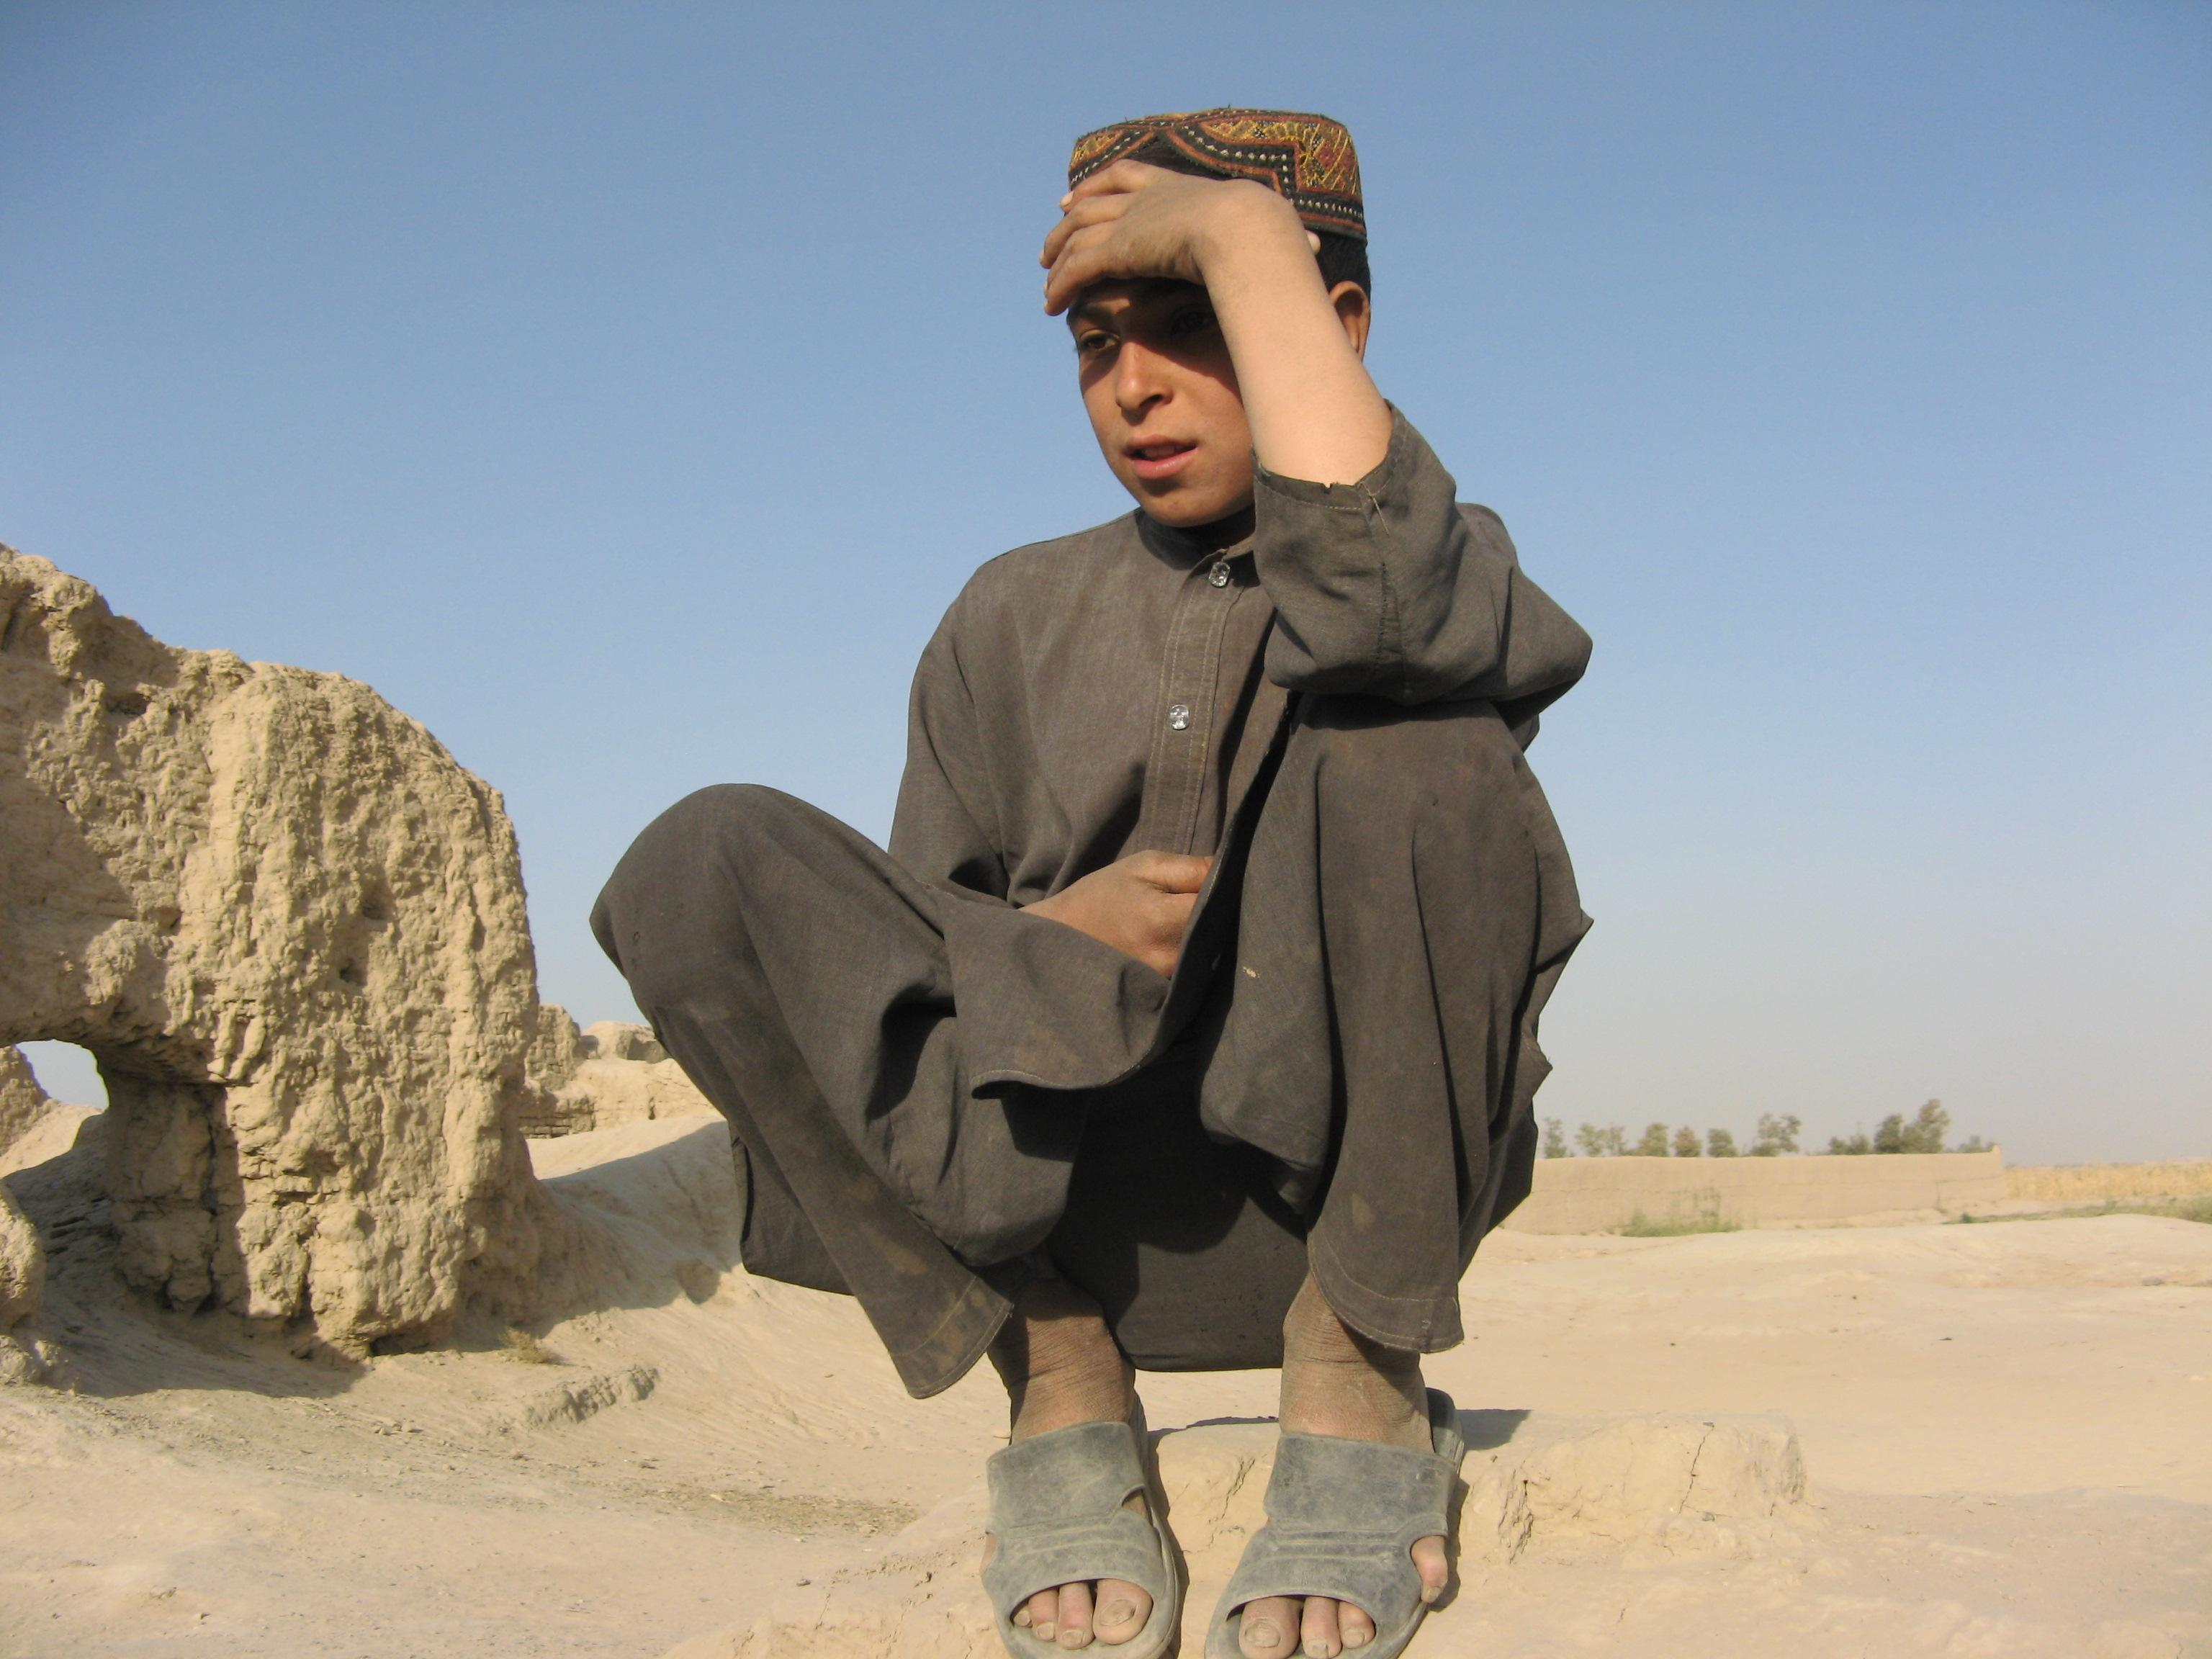 Though over US$15 billion of aid money has been spent in Afghanistan, millions of vulnerable Afghans still need urgent assistance, according to Oxfam.